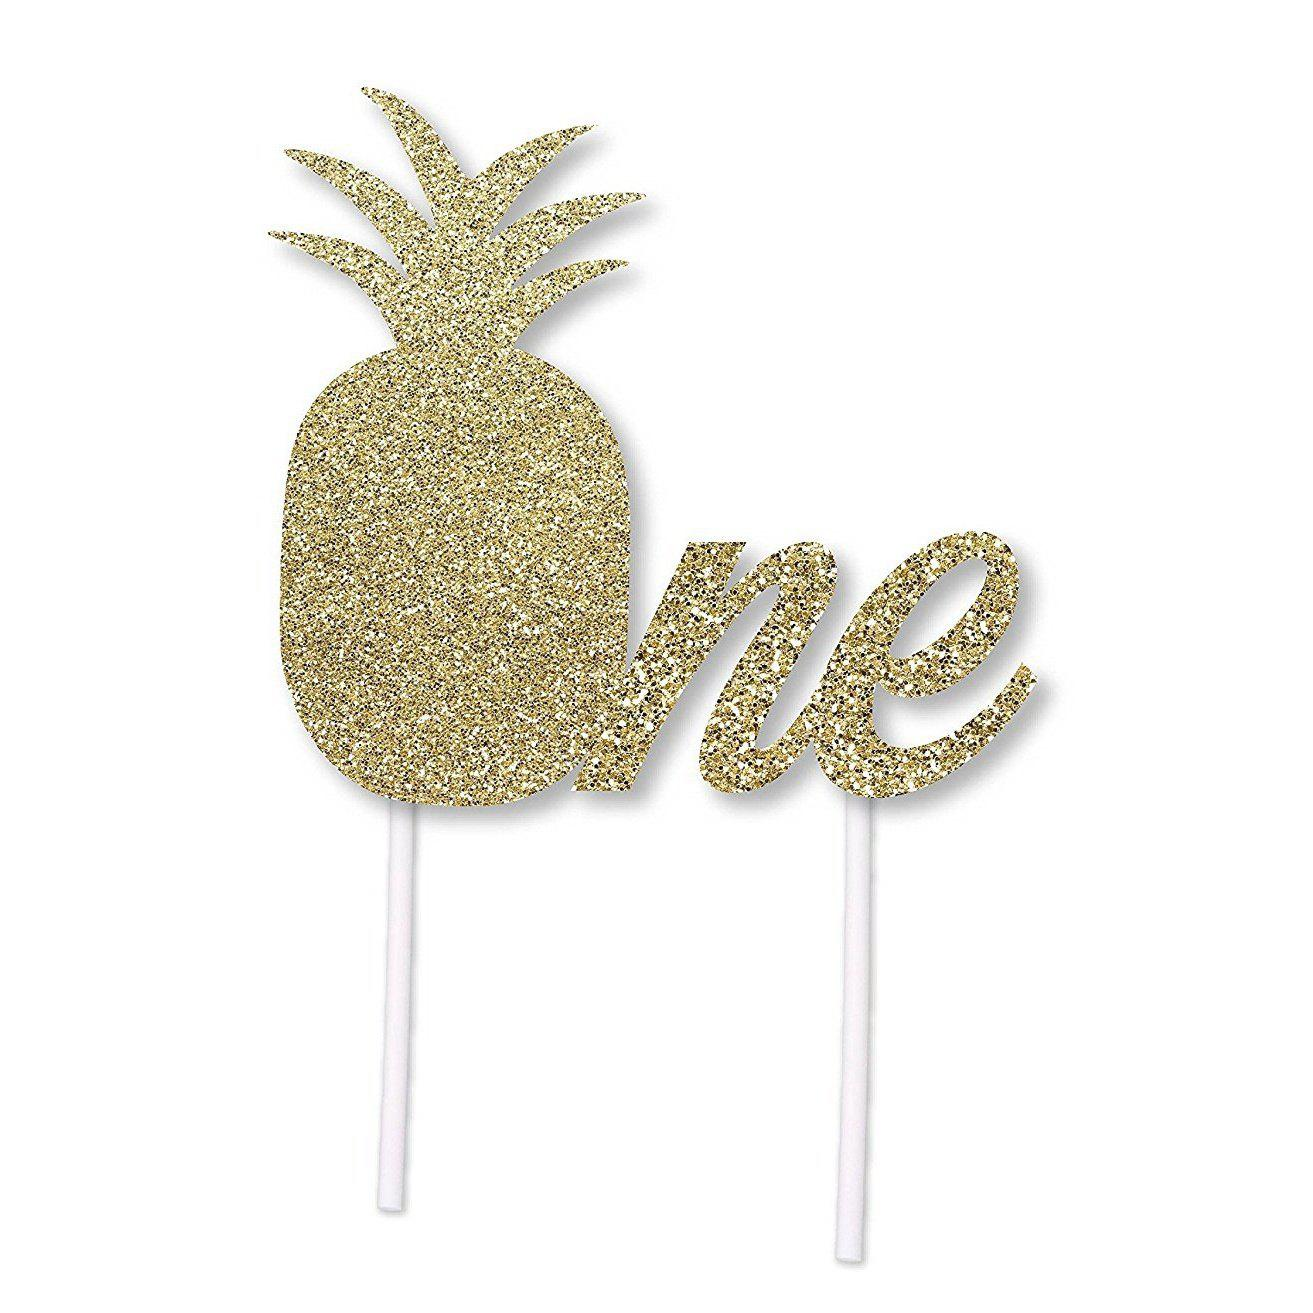 2pcs Gold Glitter Pineapple Birthday Cake Topper for 1st Birthday Party luau hawaii Themed - GOLD 2PCS